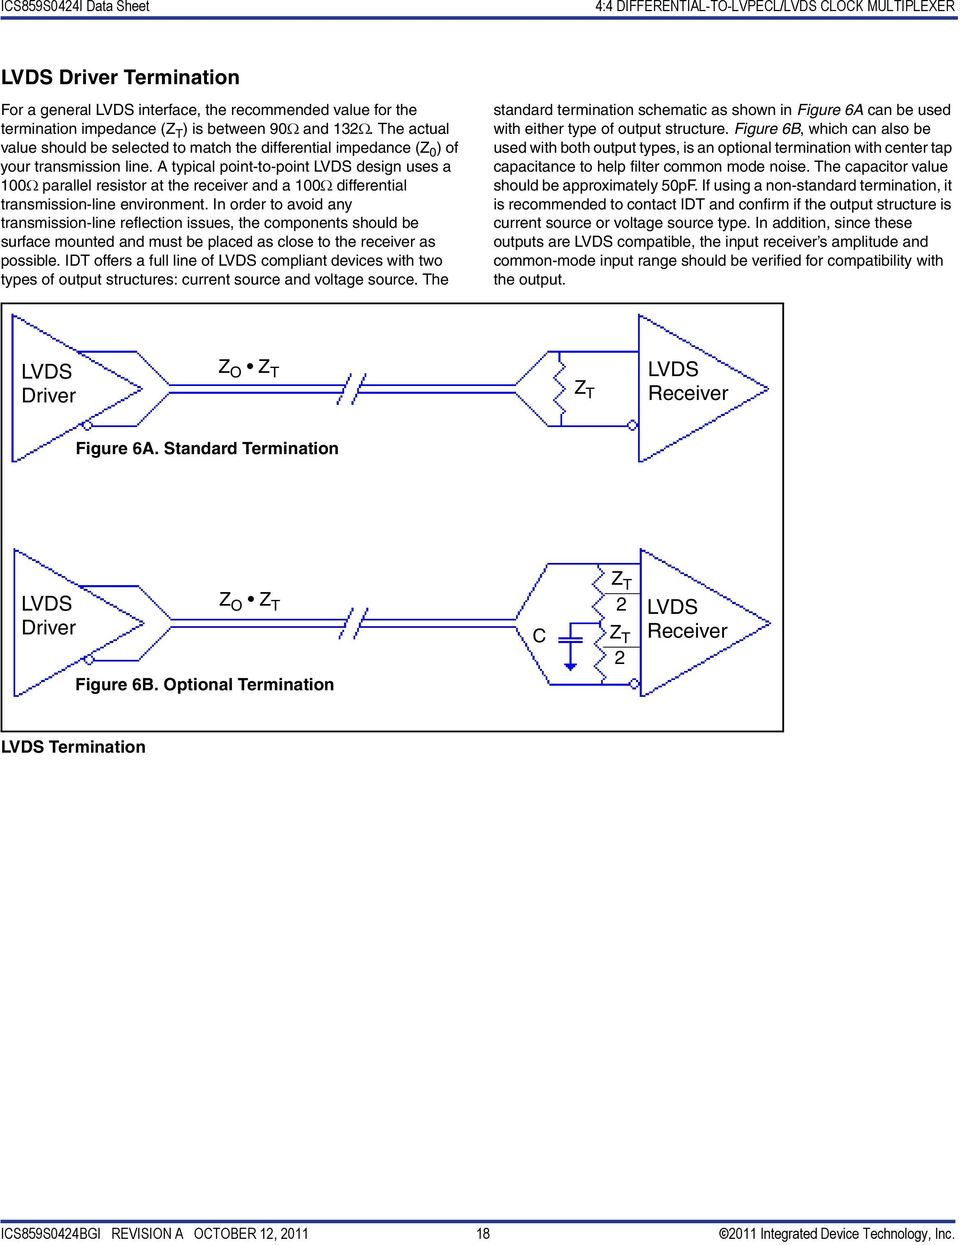 4:4 Differential-to-LVPECL/LVDS Clock Multiplexer - PDF